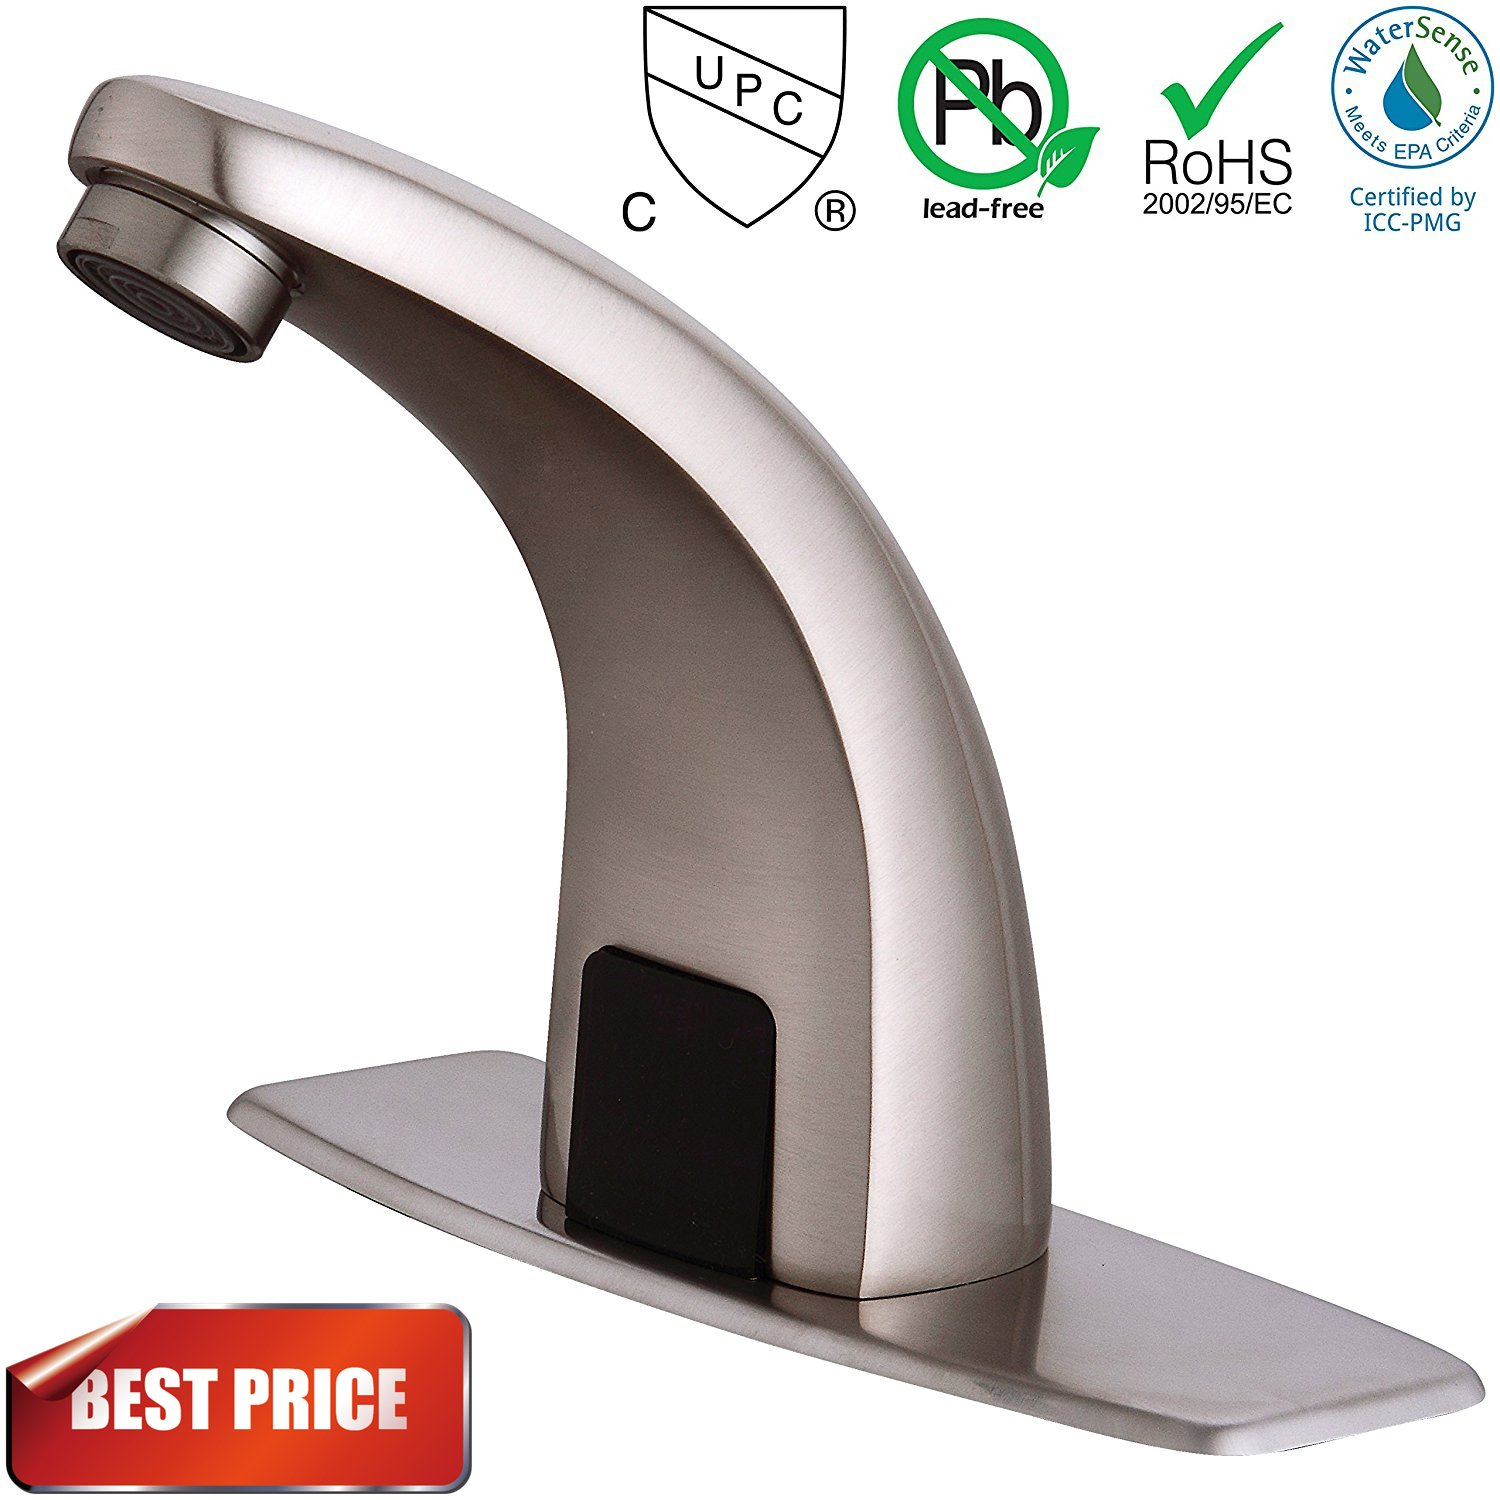 Fyeer Automatic Touchless Sensor Bathroom Faucet, Motion Activated Hands Free Kitchen Sink Tap with Hole Cover Deck Plate, Battery Operated, Brushed Nickel, Hot & Cold Mixer Control, Lead Free